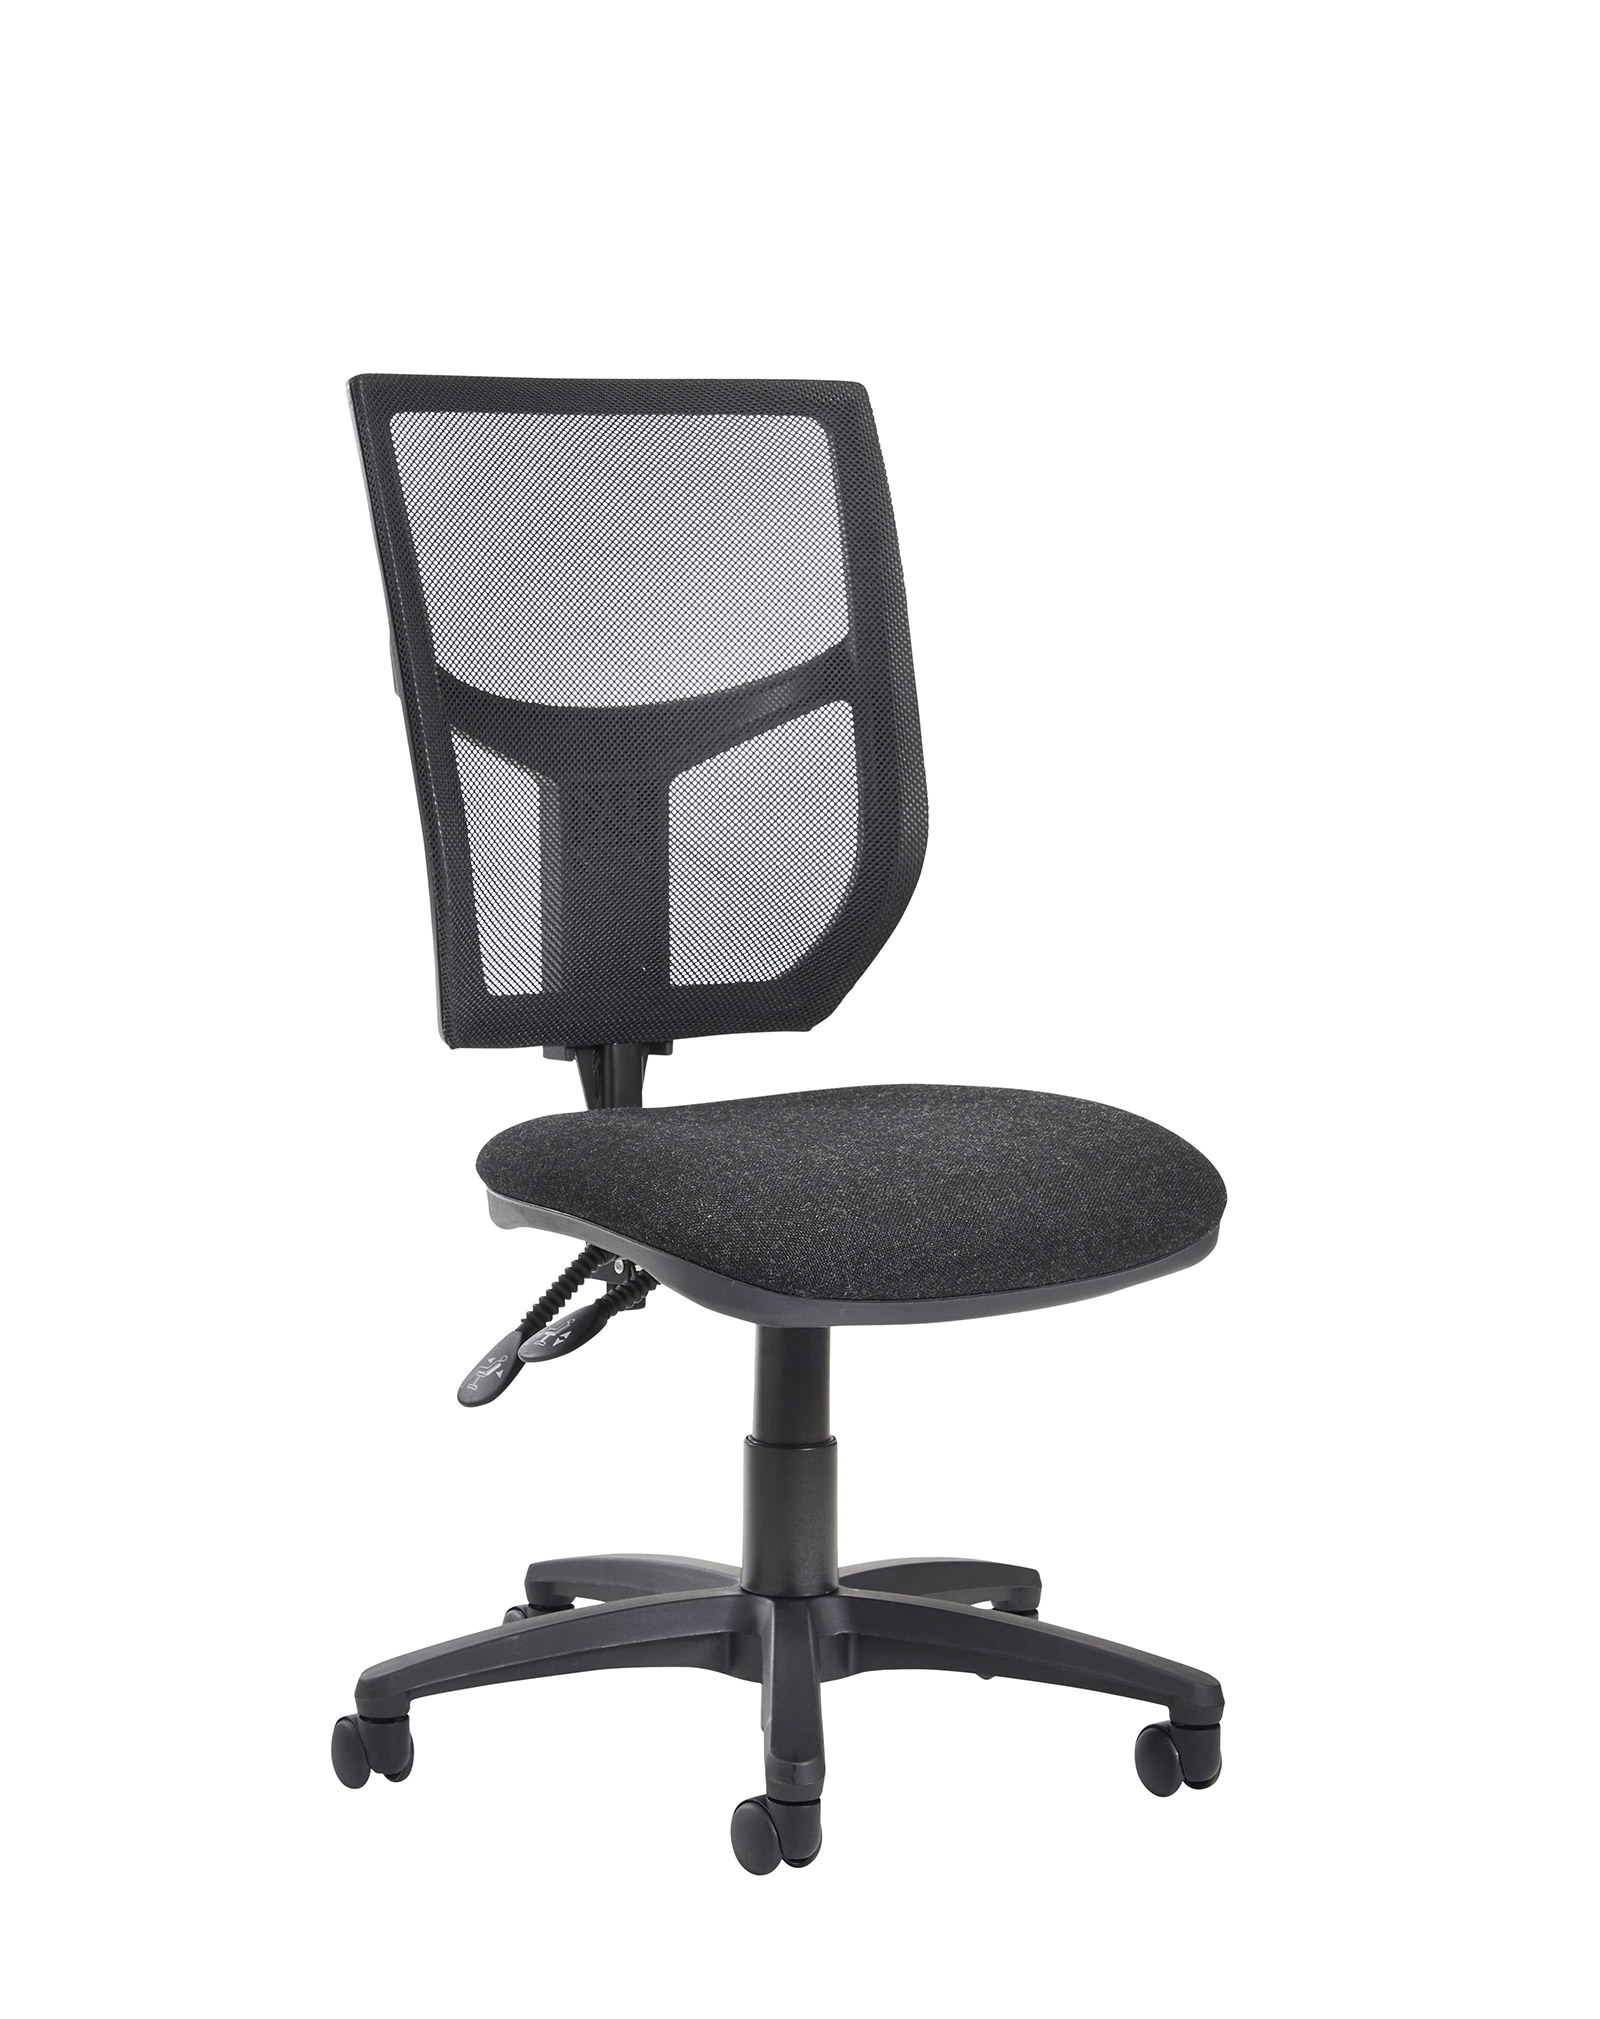 Altino high back operator chair  with no arms charcoal